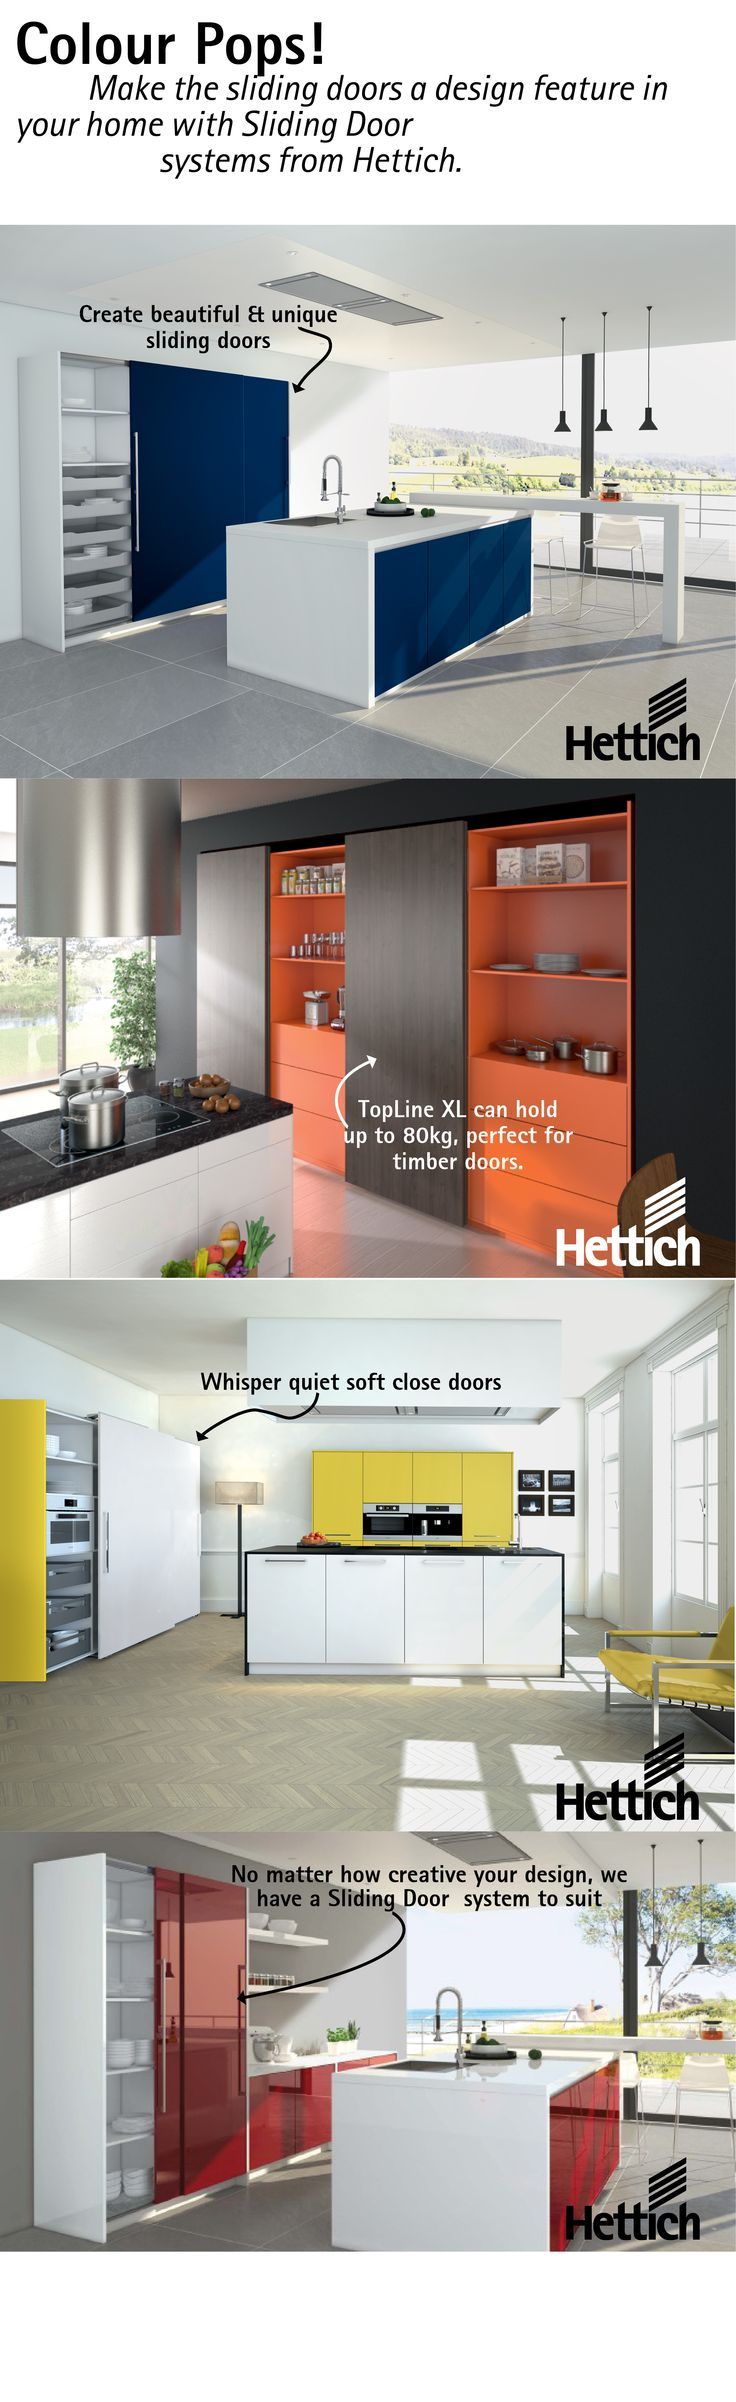 Hettich Sliding Door systems are perfect for your colourful kitchen doors. From your pantry to the cupboards Hettich has a system to suit. Click on the pin for more product information. #coloureddoors #kitchendesign